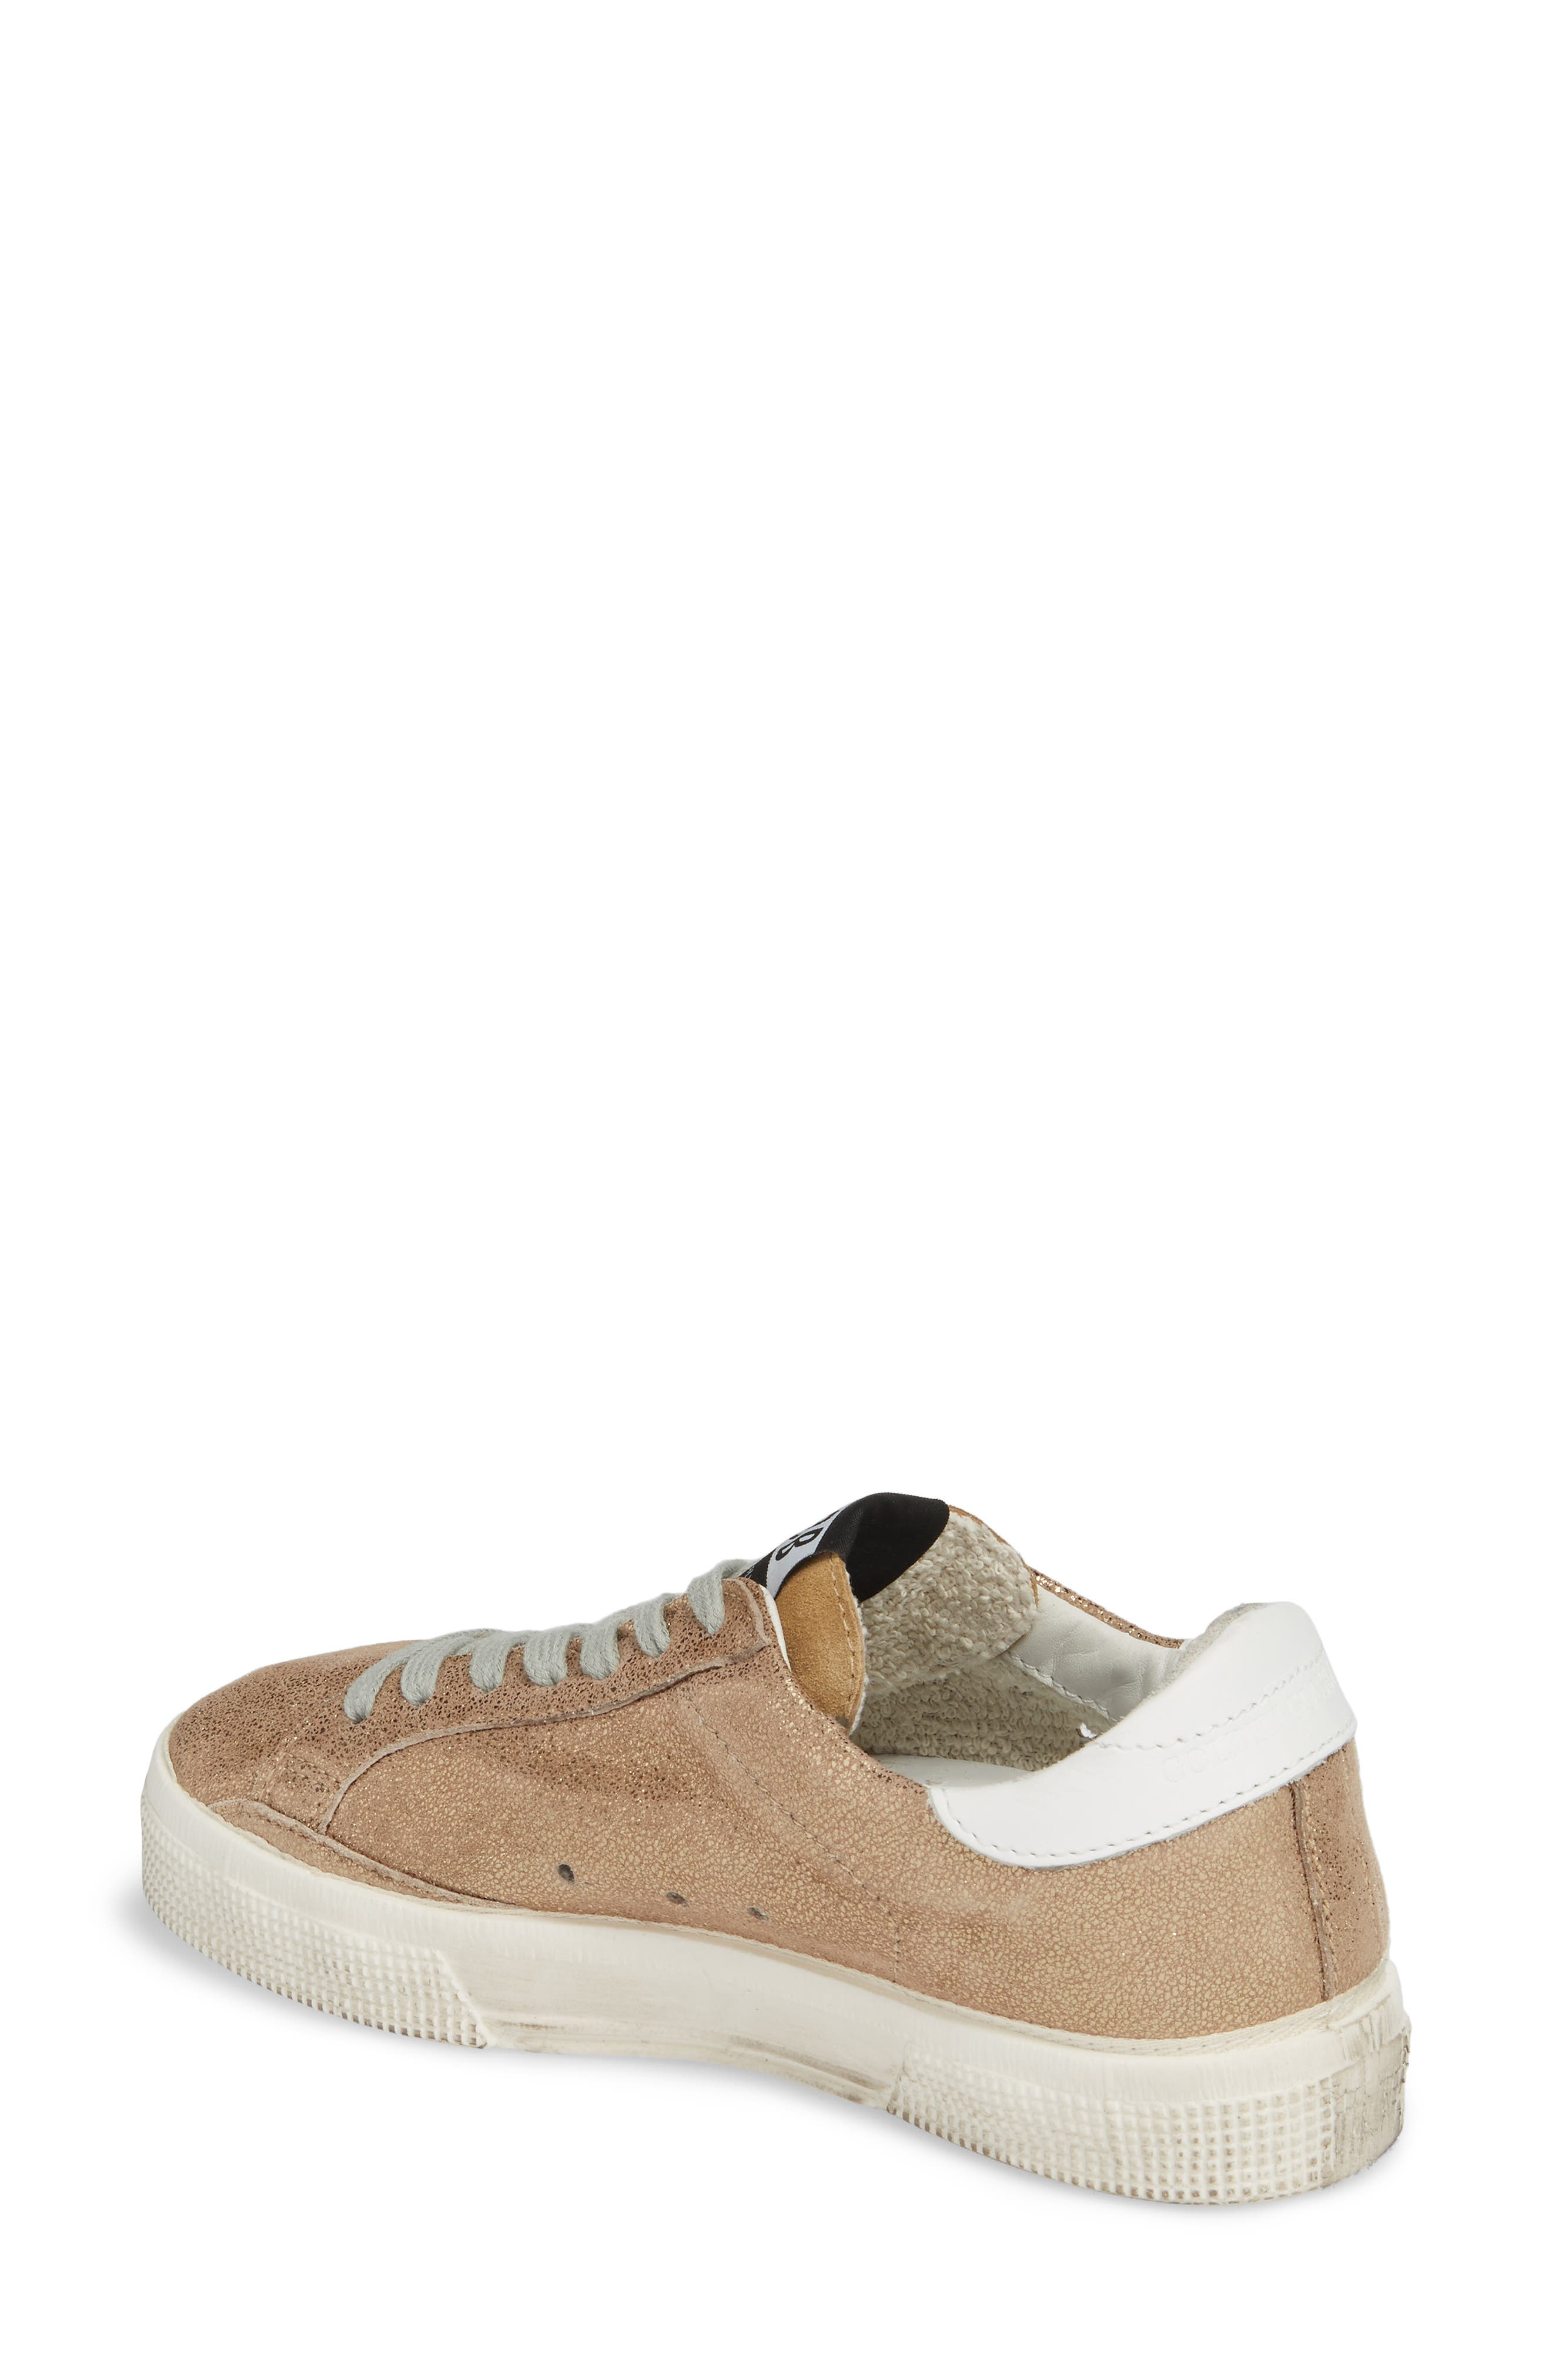 May Metallic Low Top Sneaker,                             Alternate thumbnail 2, color,                             Gold/ White